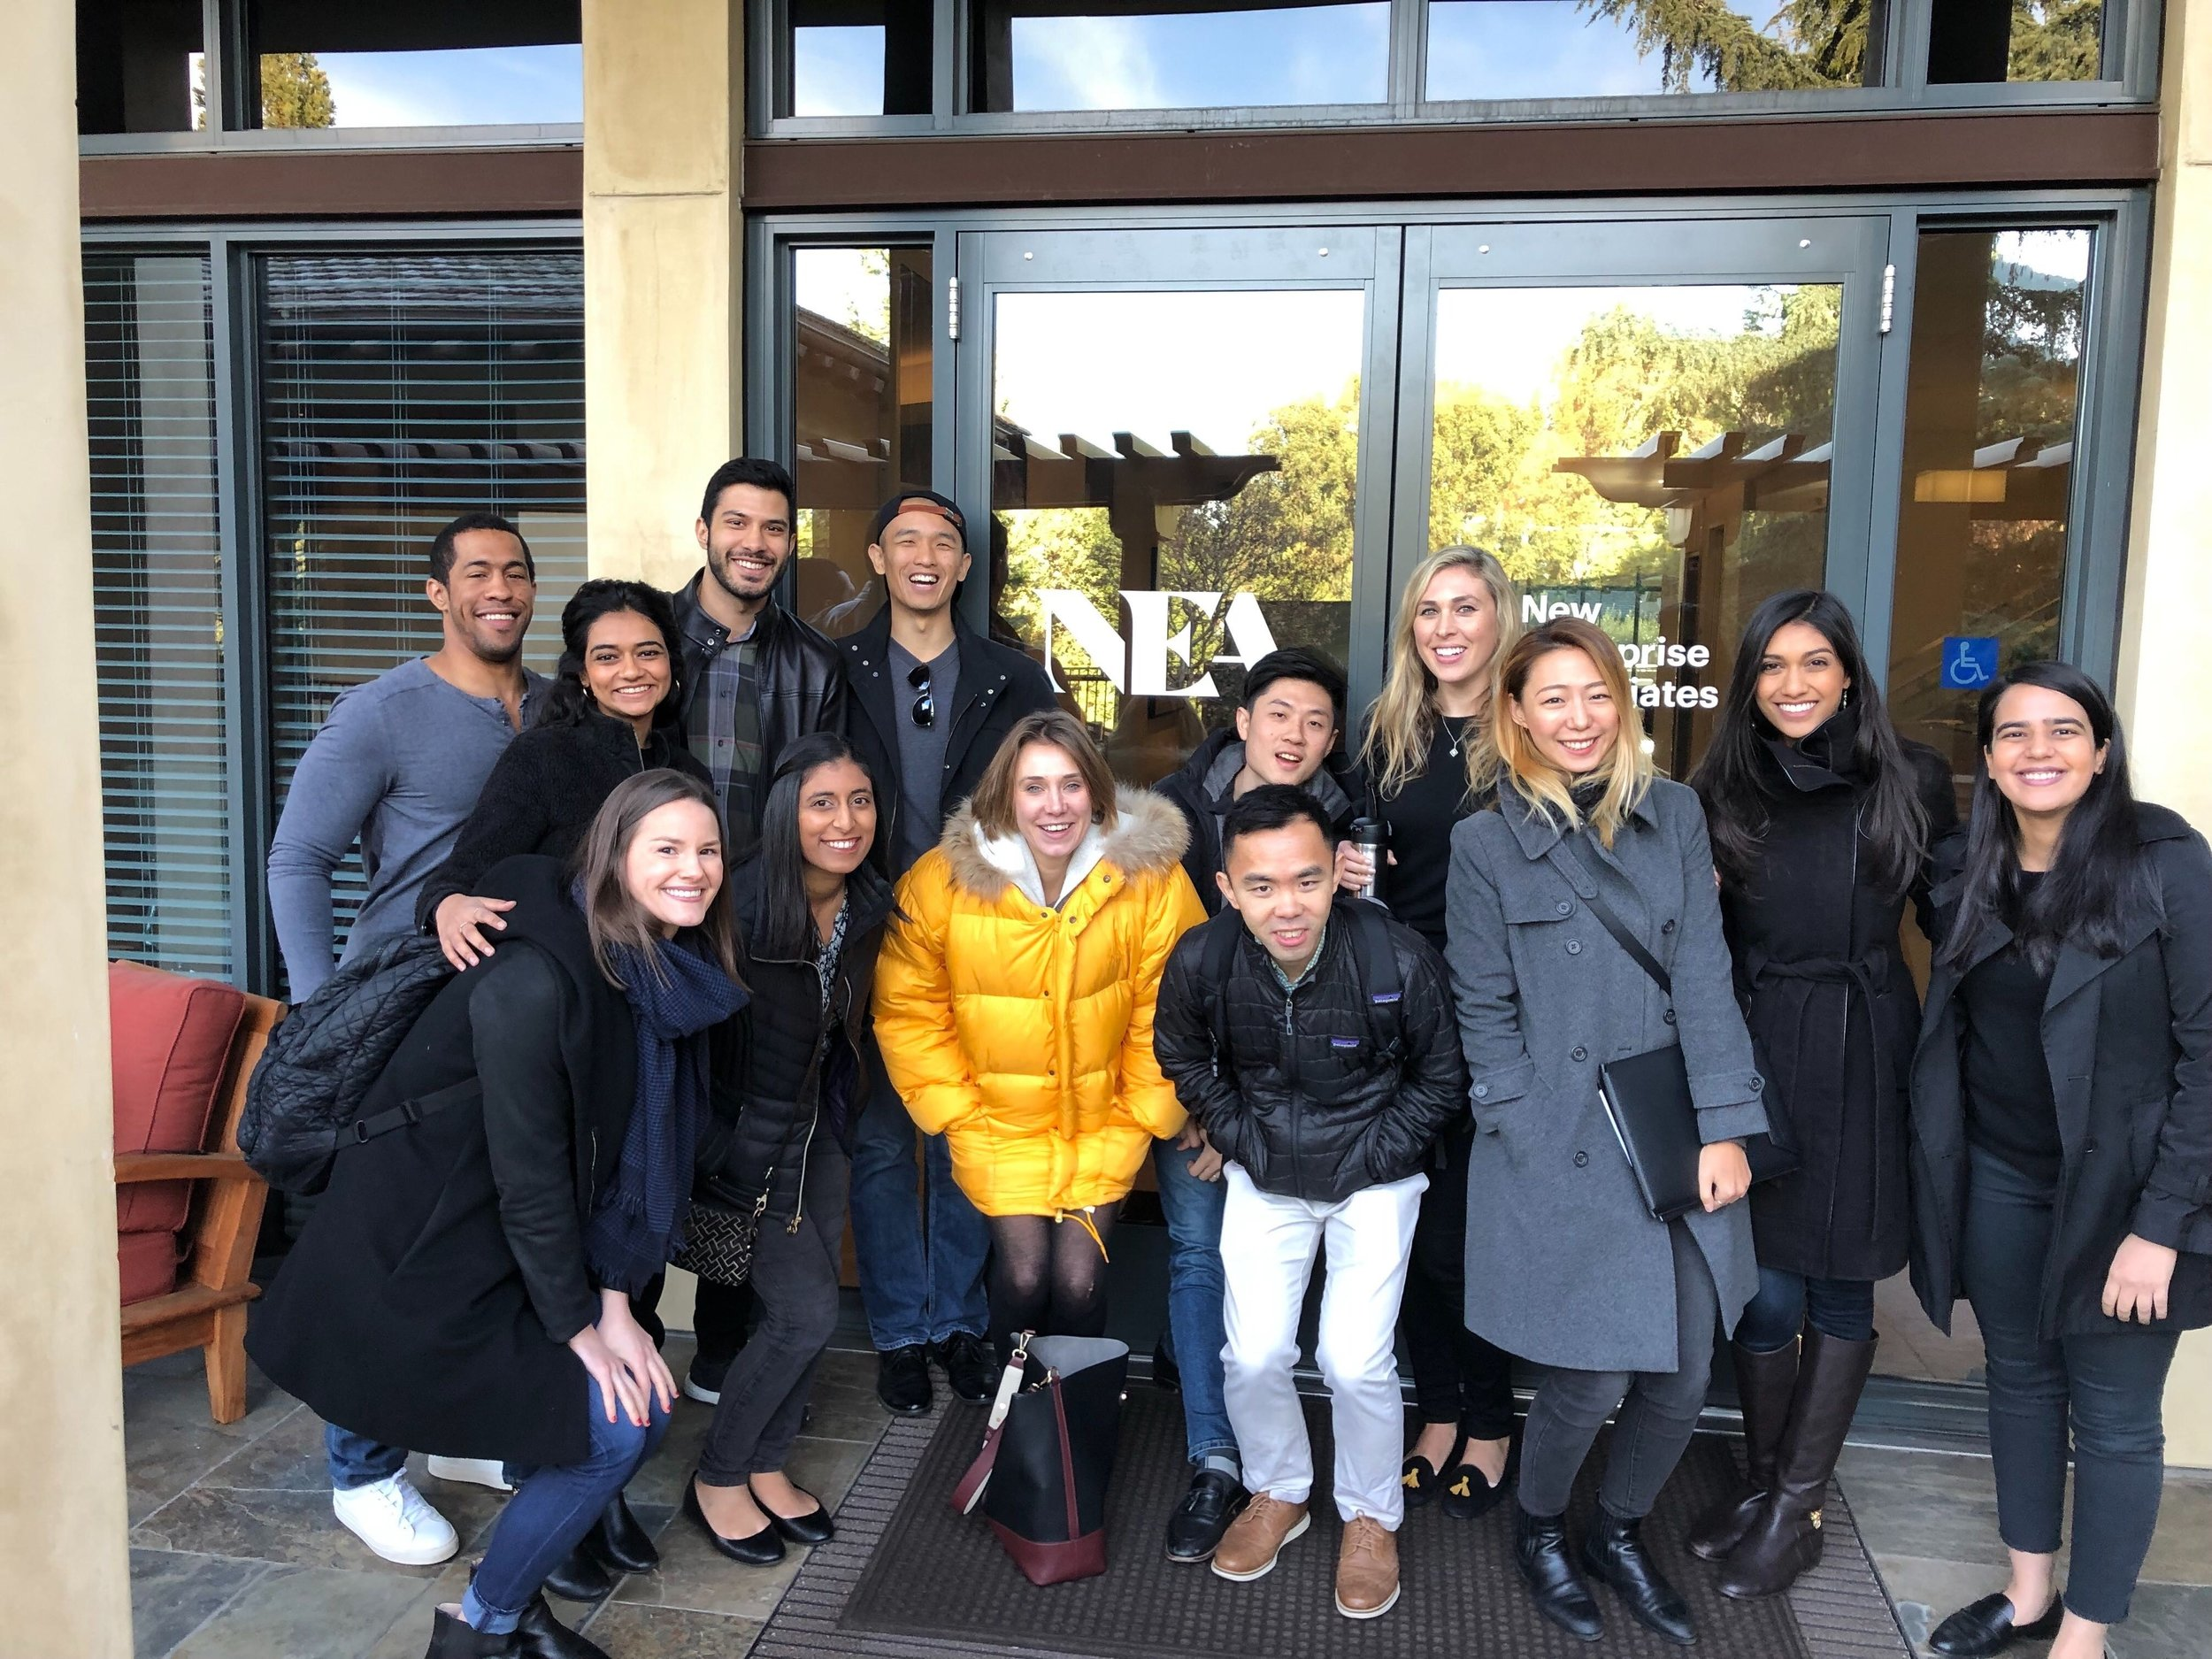 CBS students outside NEA after an inspiring meeting with serial inventor and entrepreneur Josh Makower (CBS Alum) - Jan 2019